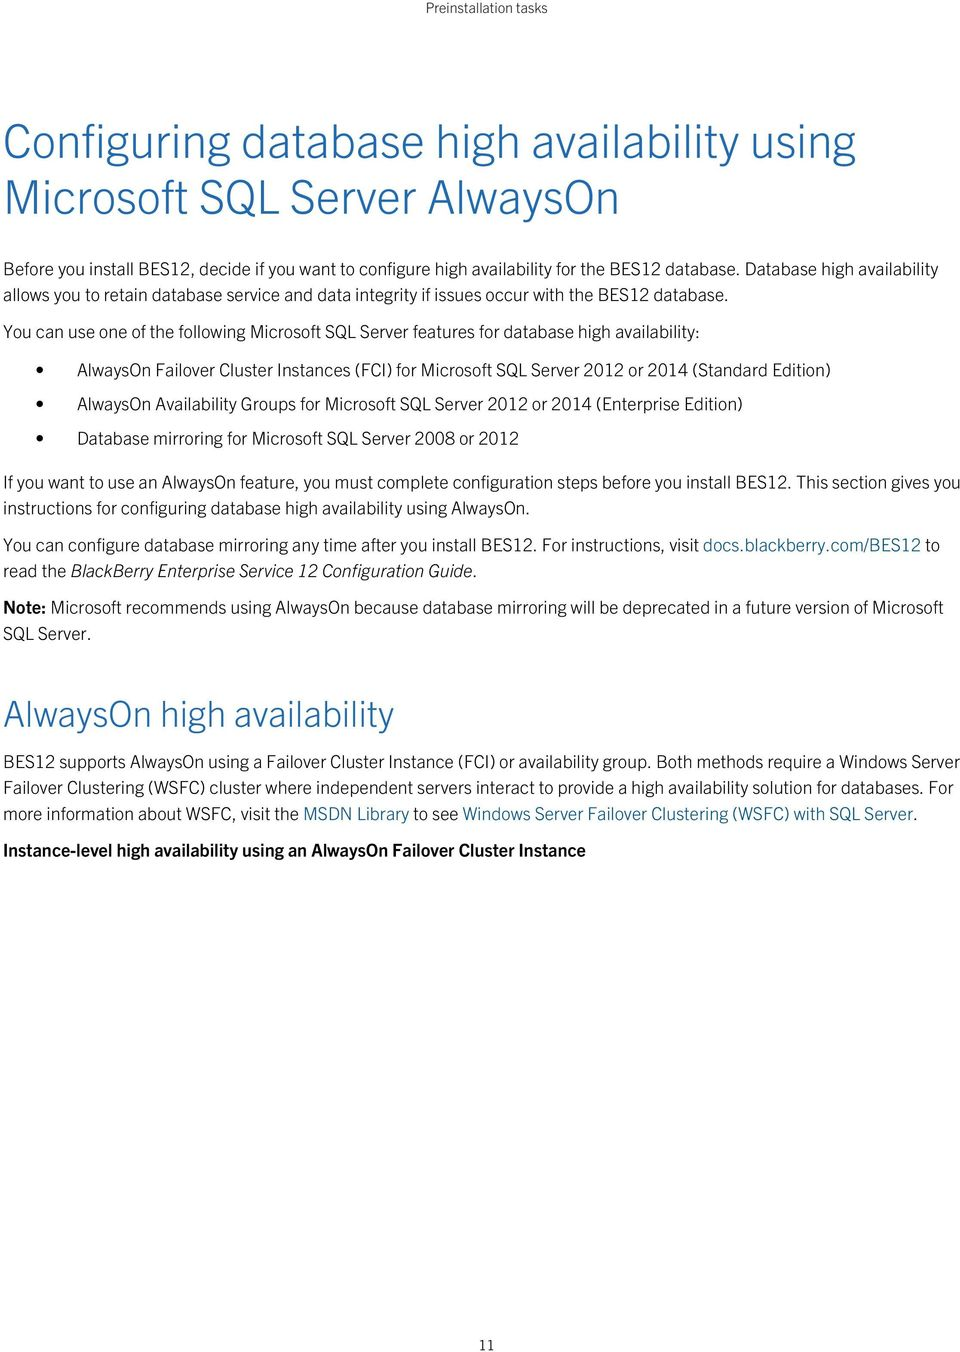 You can use one of the following Microsoft SQL Server features for database high availability: AlwaysOn Failover Cluster Instances (FCI) for Microsoft SQL Server 2012 or 2014 (Standard Edition)